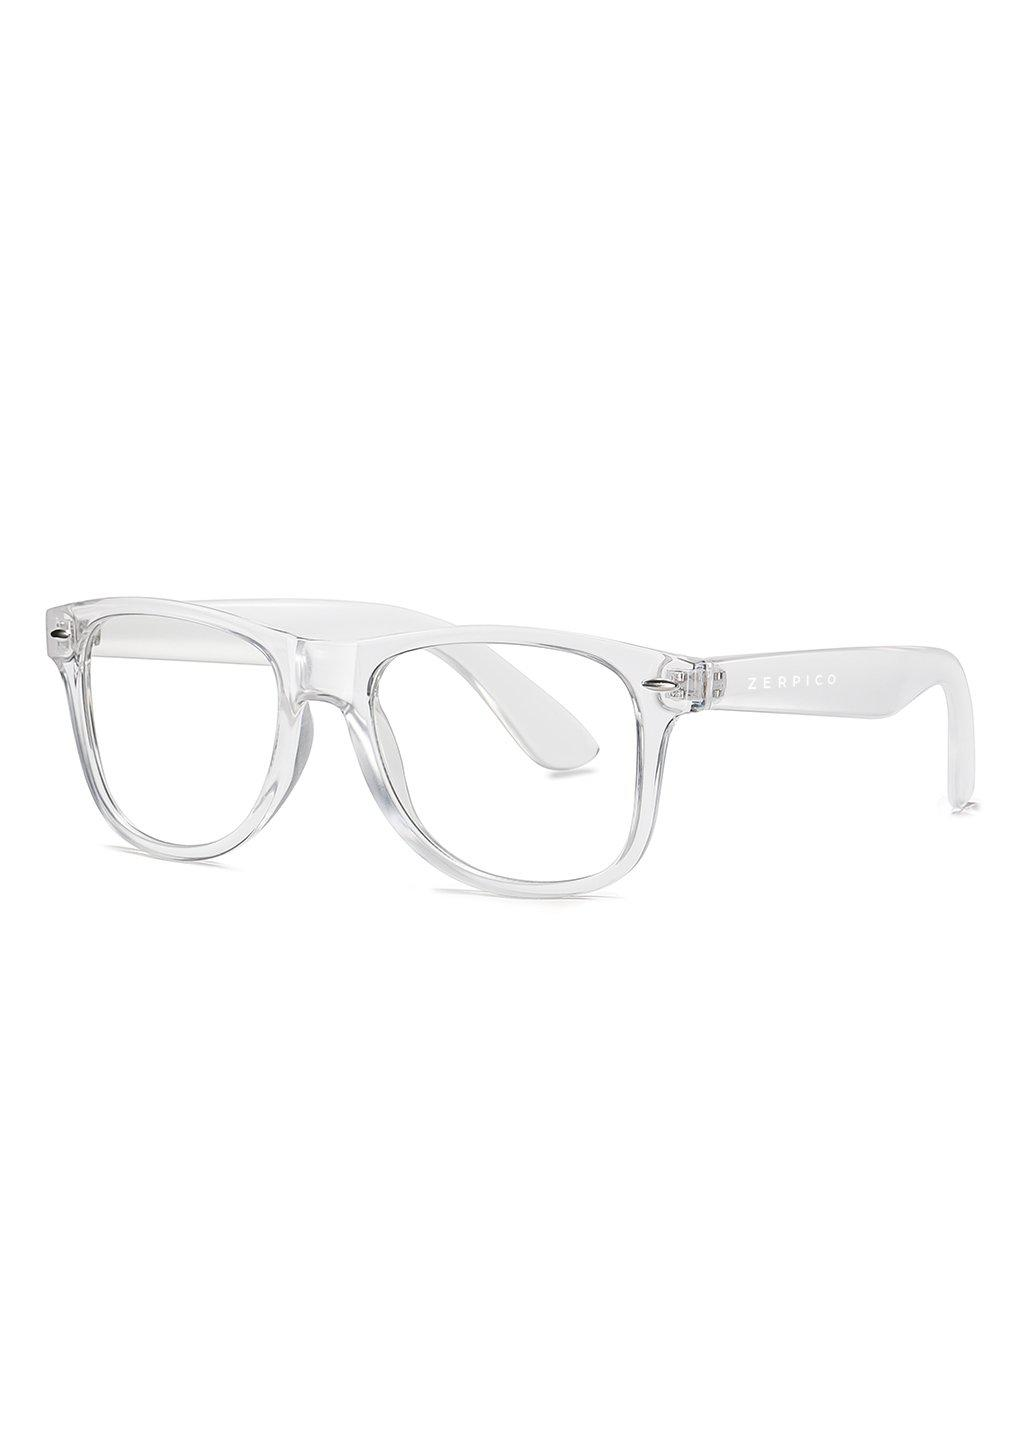 Xenon Photochromic anti bluelight clubmaster glasses that work like two in one. Turns dark in the sun and clear inside.